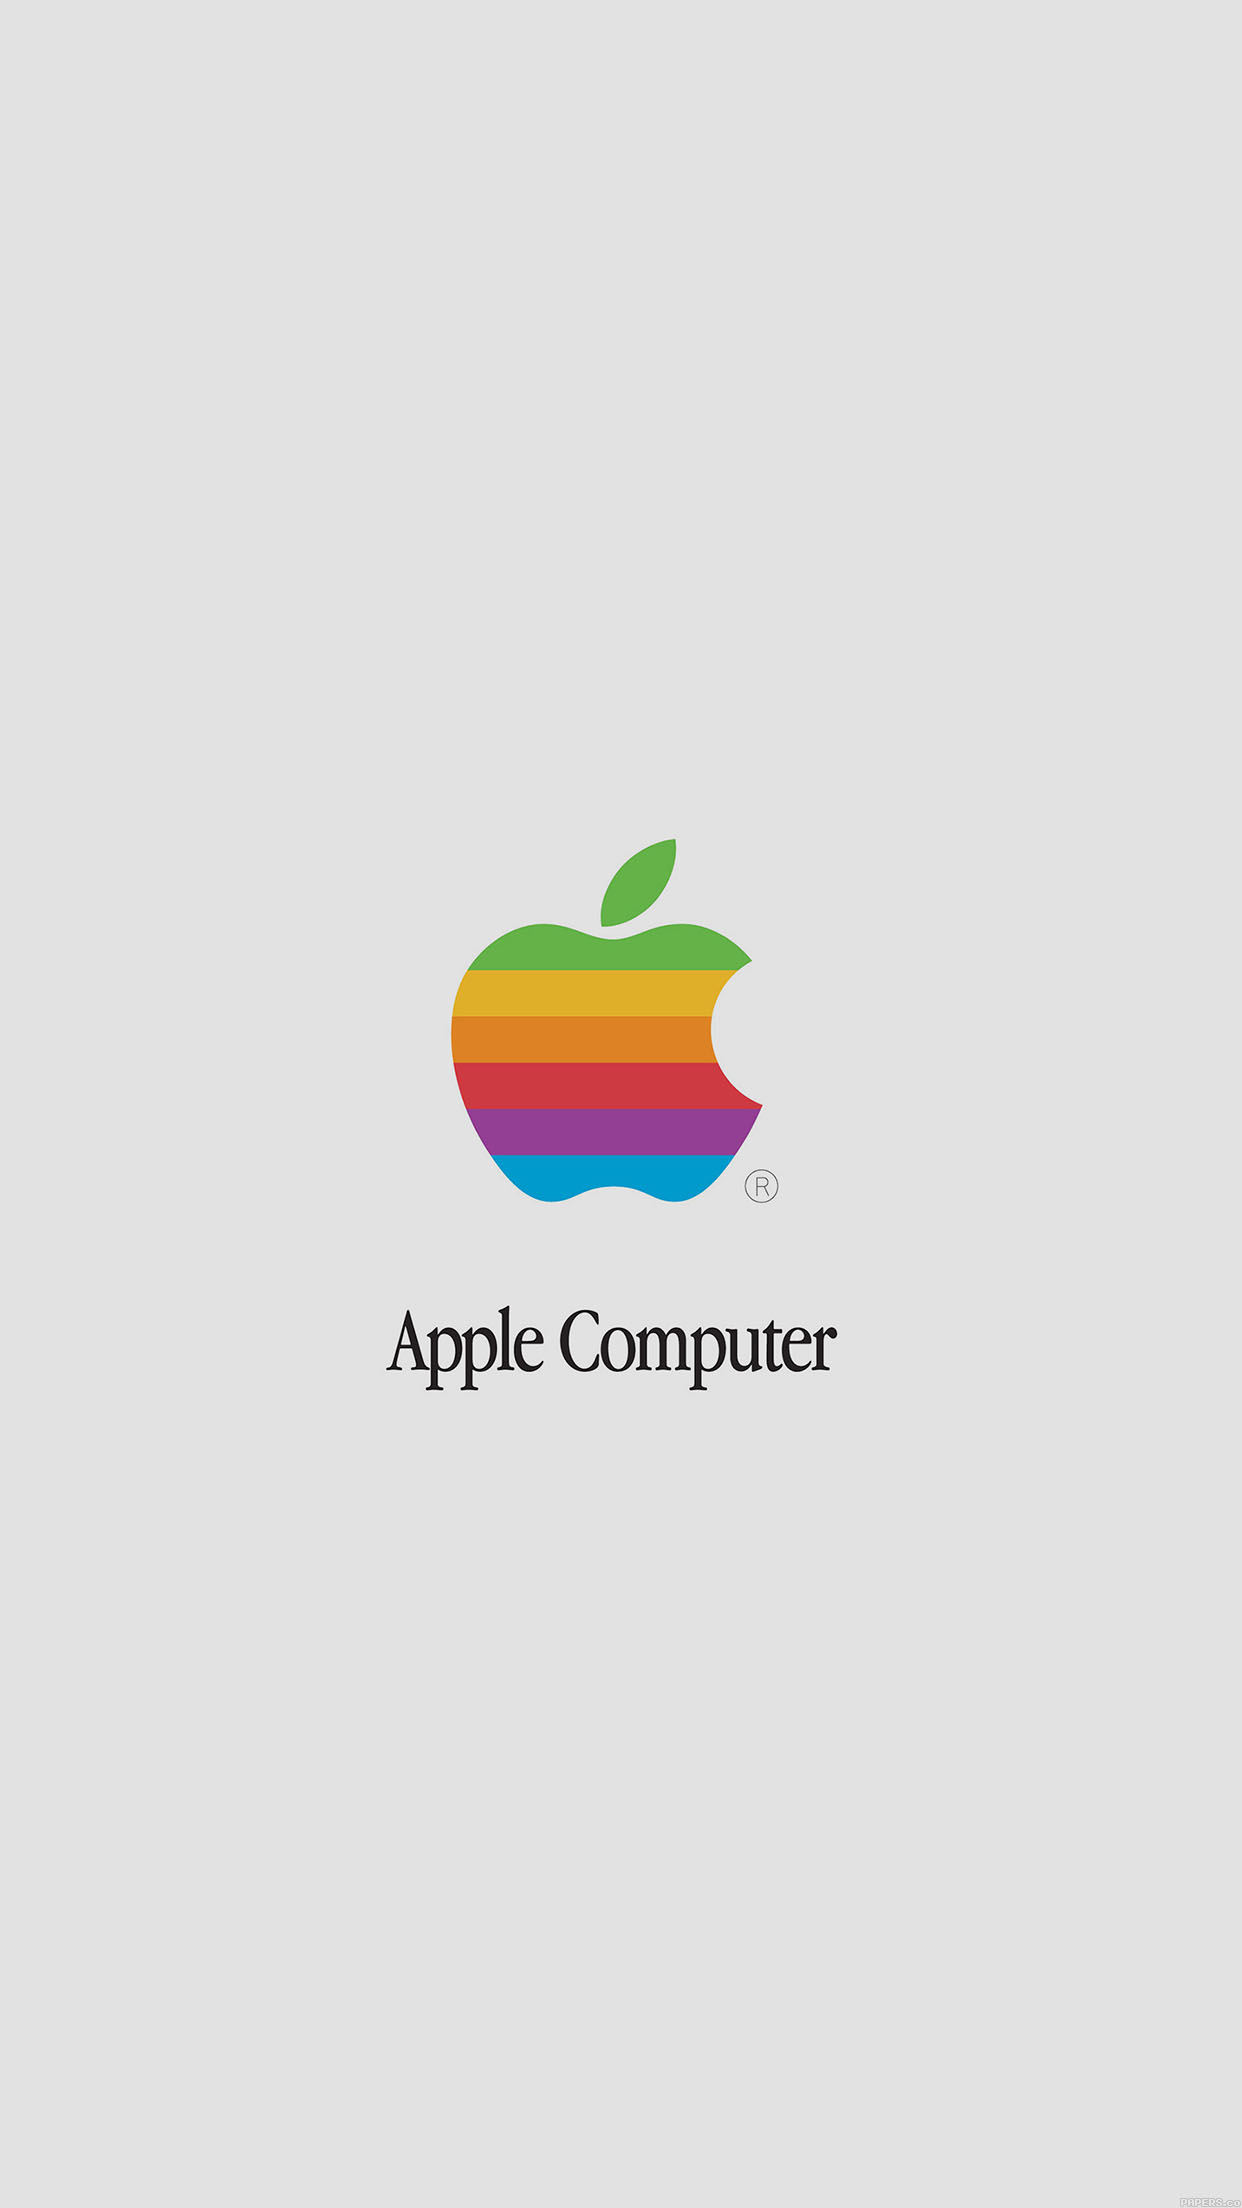 Wallpaper Apple Computer Android Wallpaper Android Hd Wallpapers